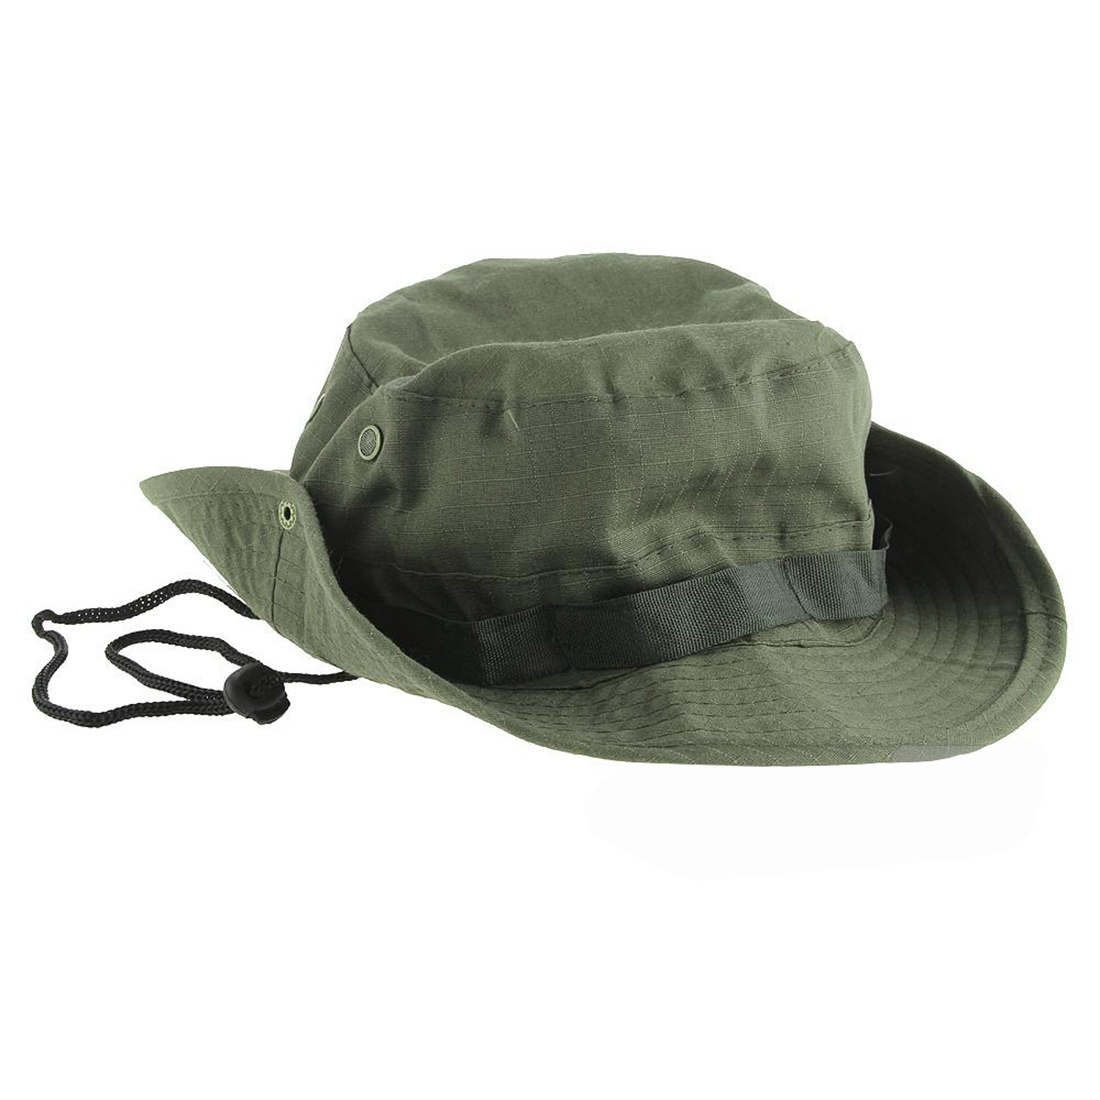 Wide Brim Bucket Hat Hiking Camping Sunshade Hat Army Green Traveling Fishing Bonnie Hat With Adjustable Straps Mens Sports Caps